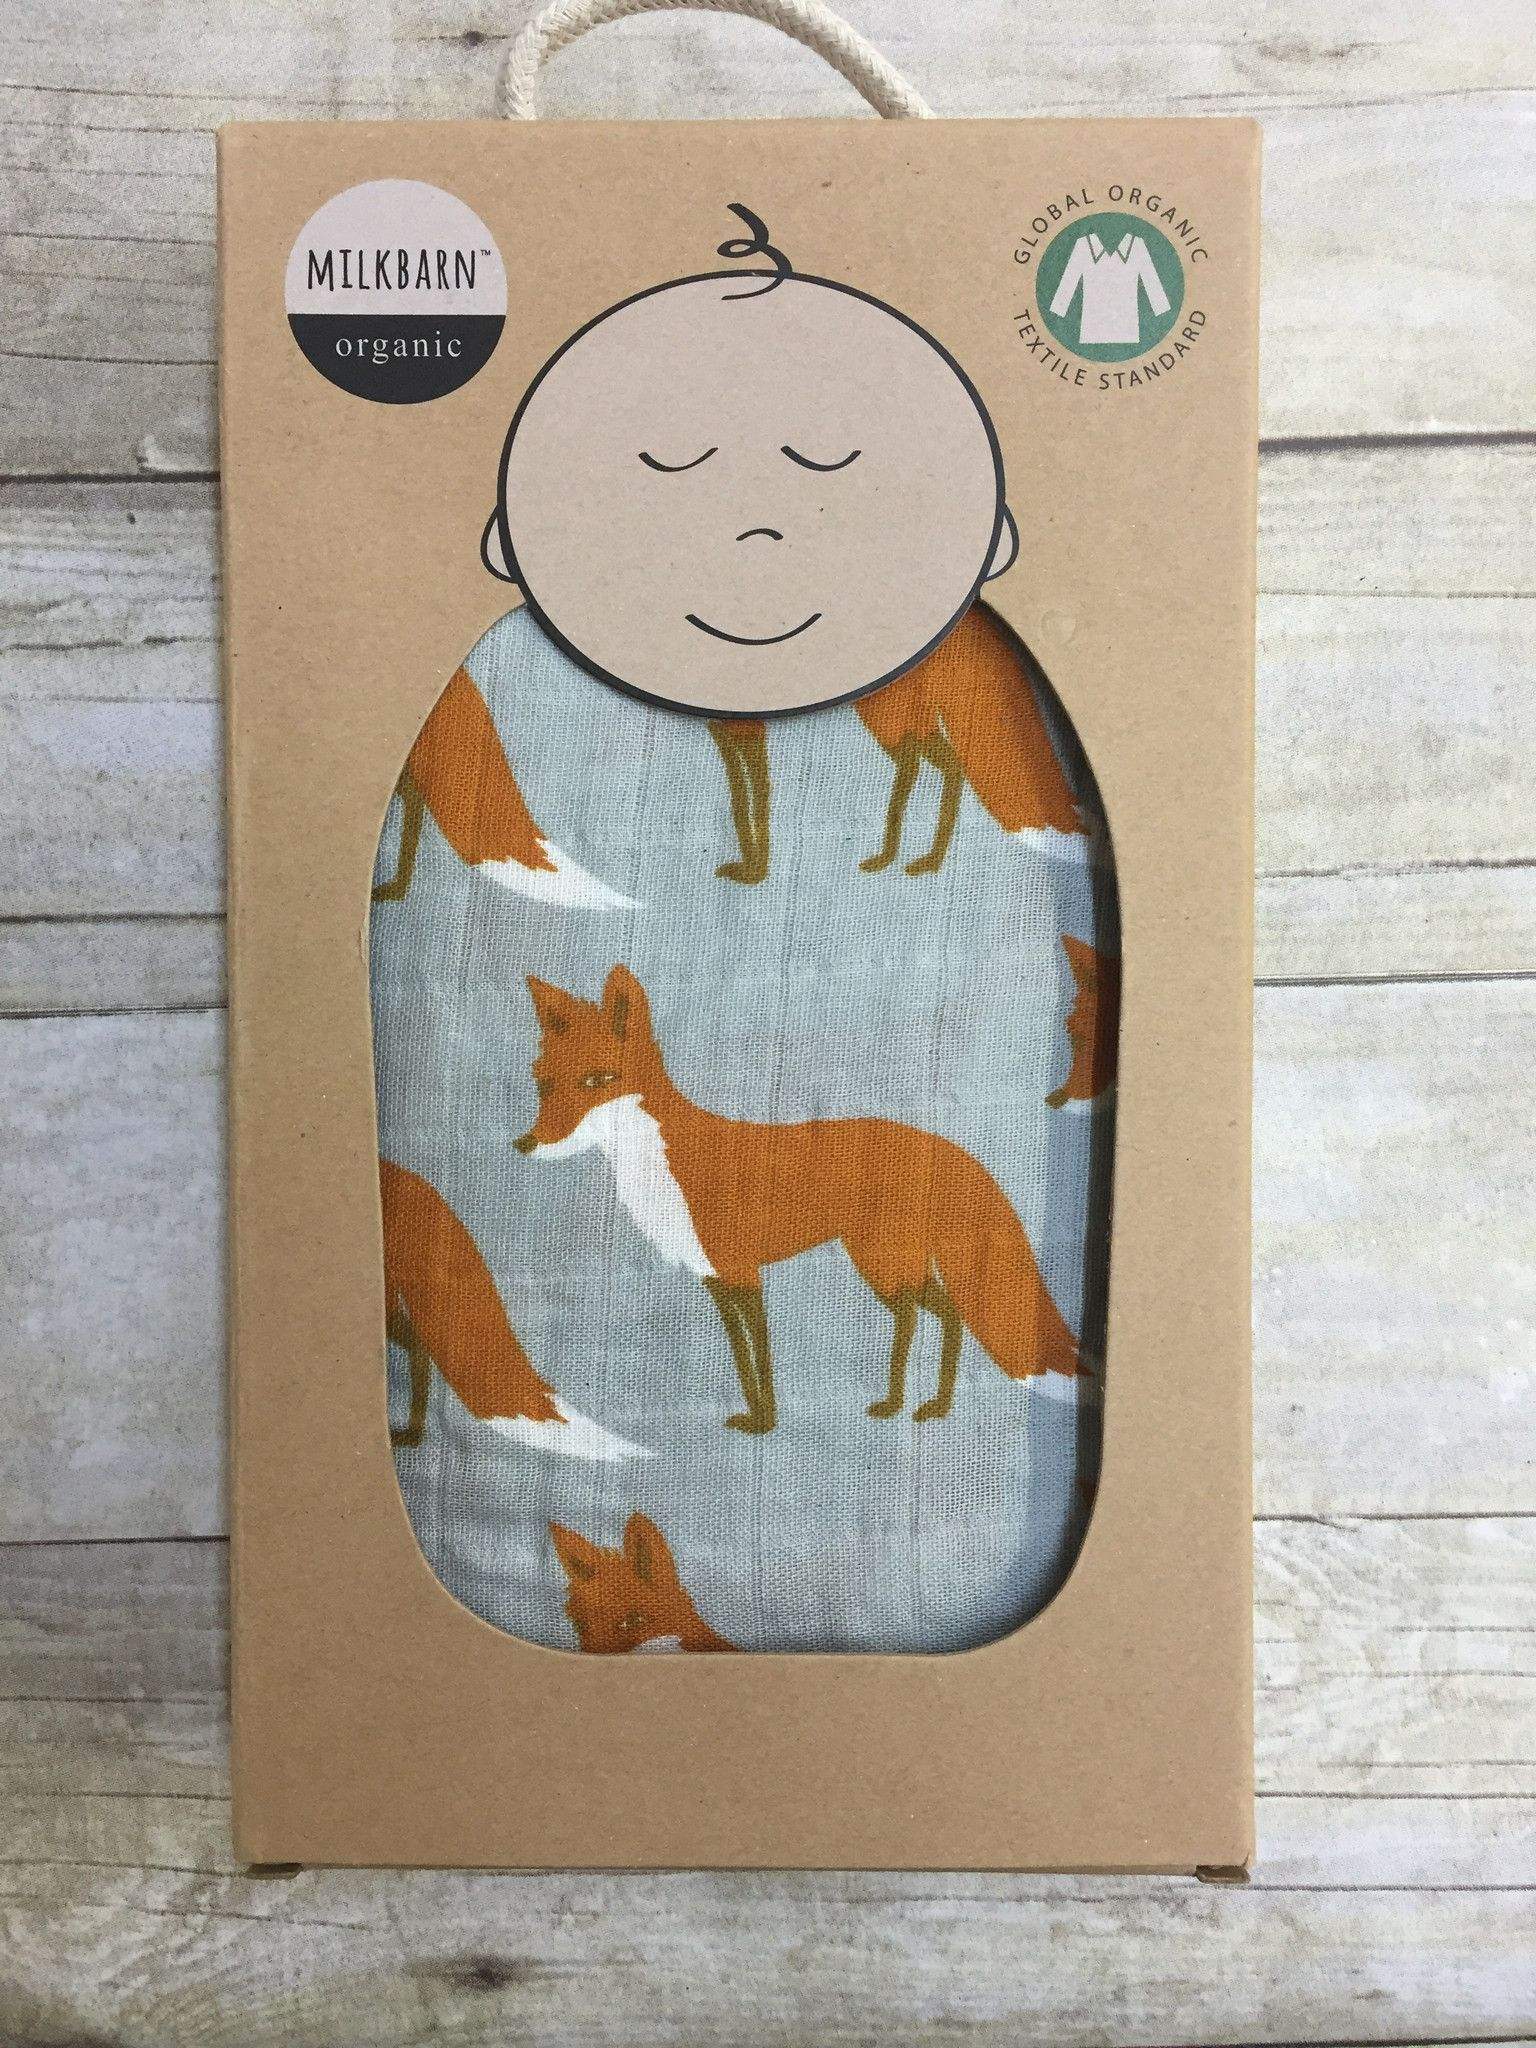 "Milk Barn swaddling blankets are made of GO TS certified cotton and are incredibly soft, light and breathable. Our blankets are generously sized 47"" x 47"". Not only are they ideal for swaddling, they"